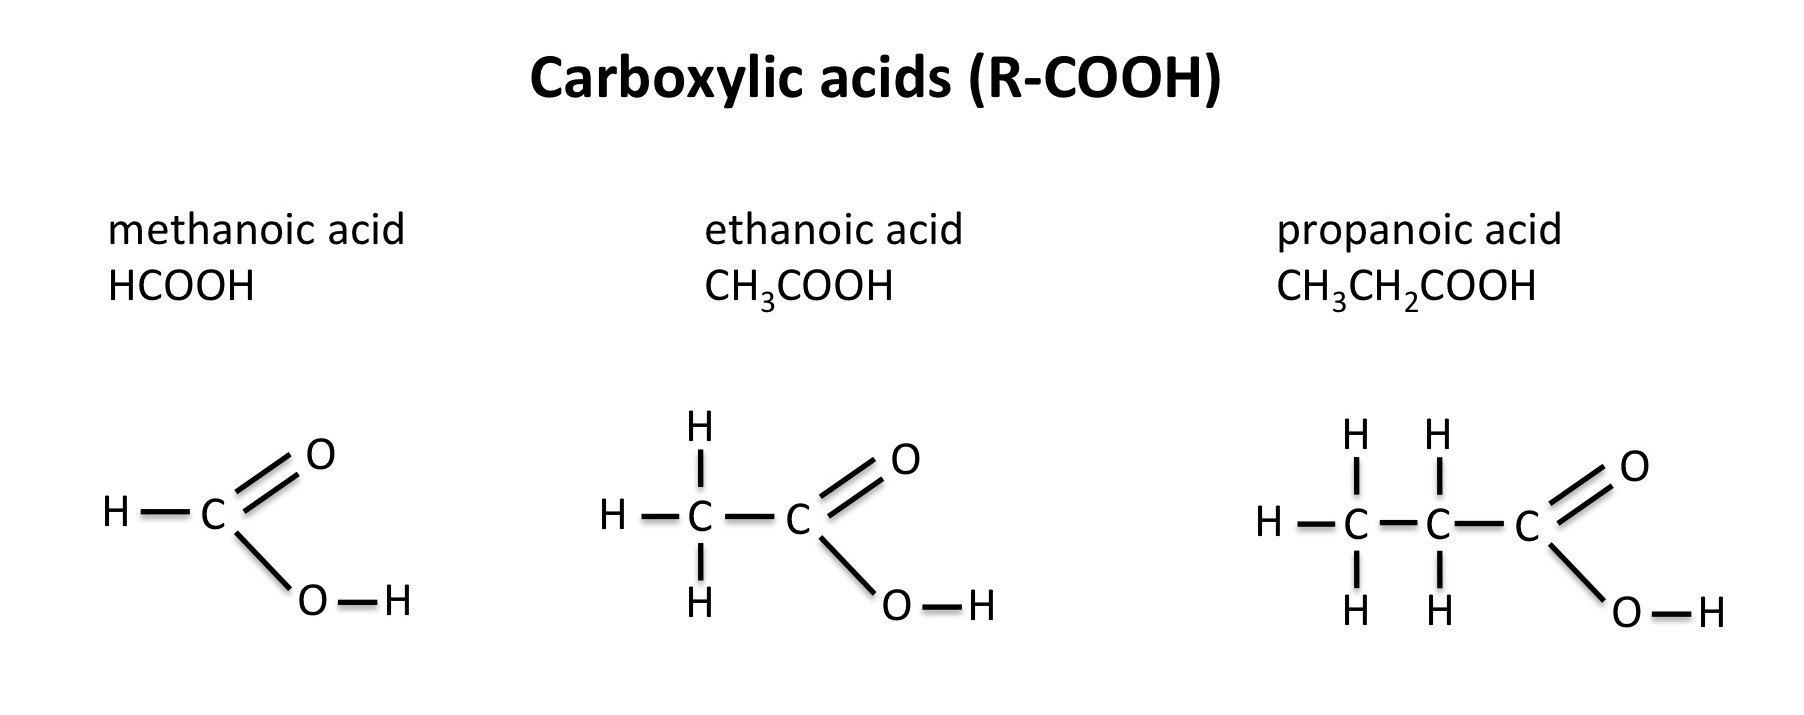 (http://secondaryscience4all.files.wordpress.com/2014/08/gcse-carboxylic-acids-e1407804022284.jpg)